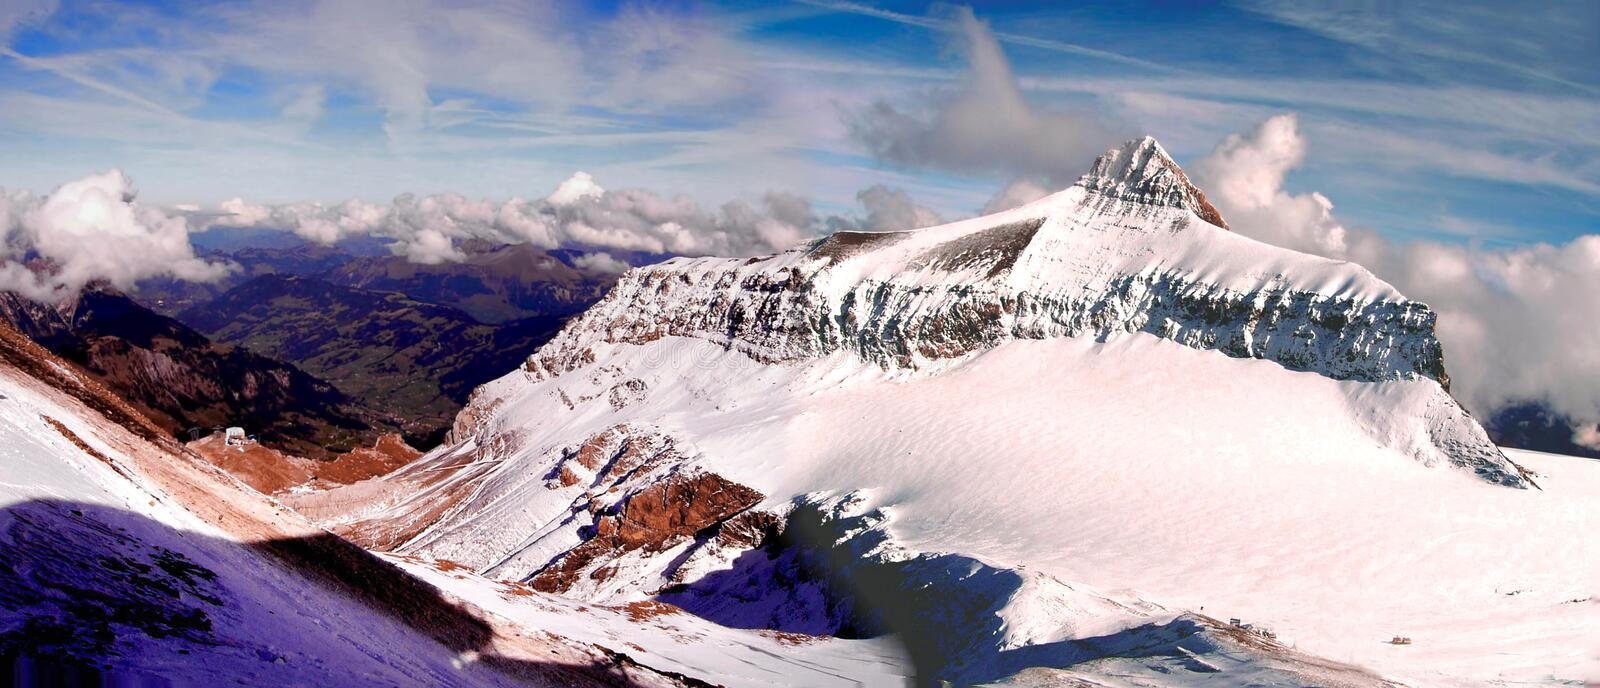 Alps 3000 mountain peak panaromoc. A panoramic view of alps peak 3000 in Switzerland from the top royalty free stock image